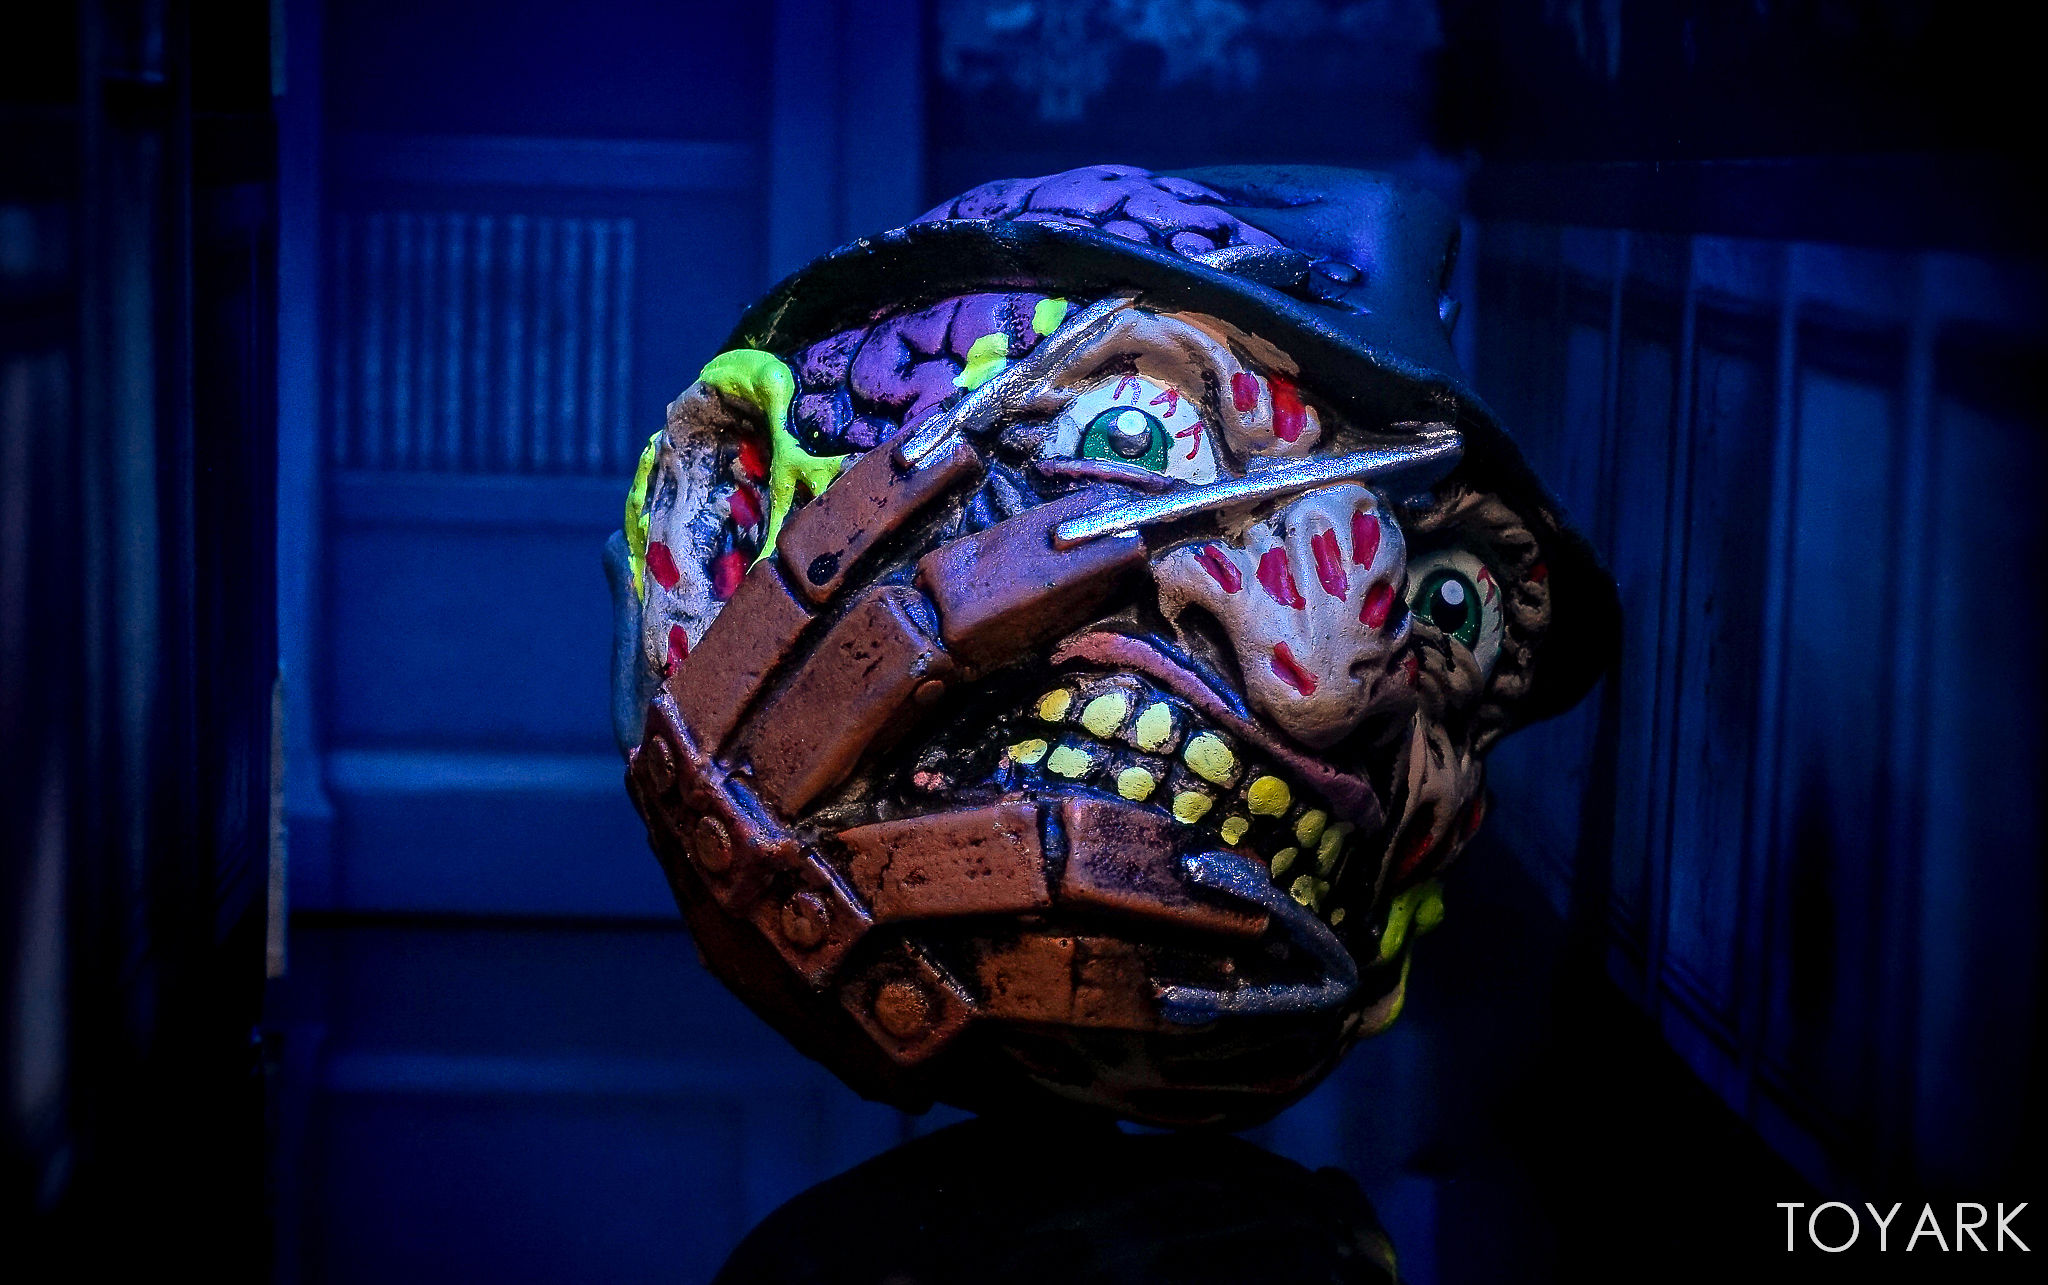 http://news.toyark.com/wp-content/uploads/sites/4/2017/09/Kidrobot-Horror-and-Sci-Fi-Madballs-034.jpg